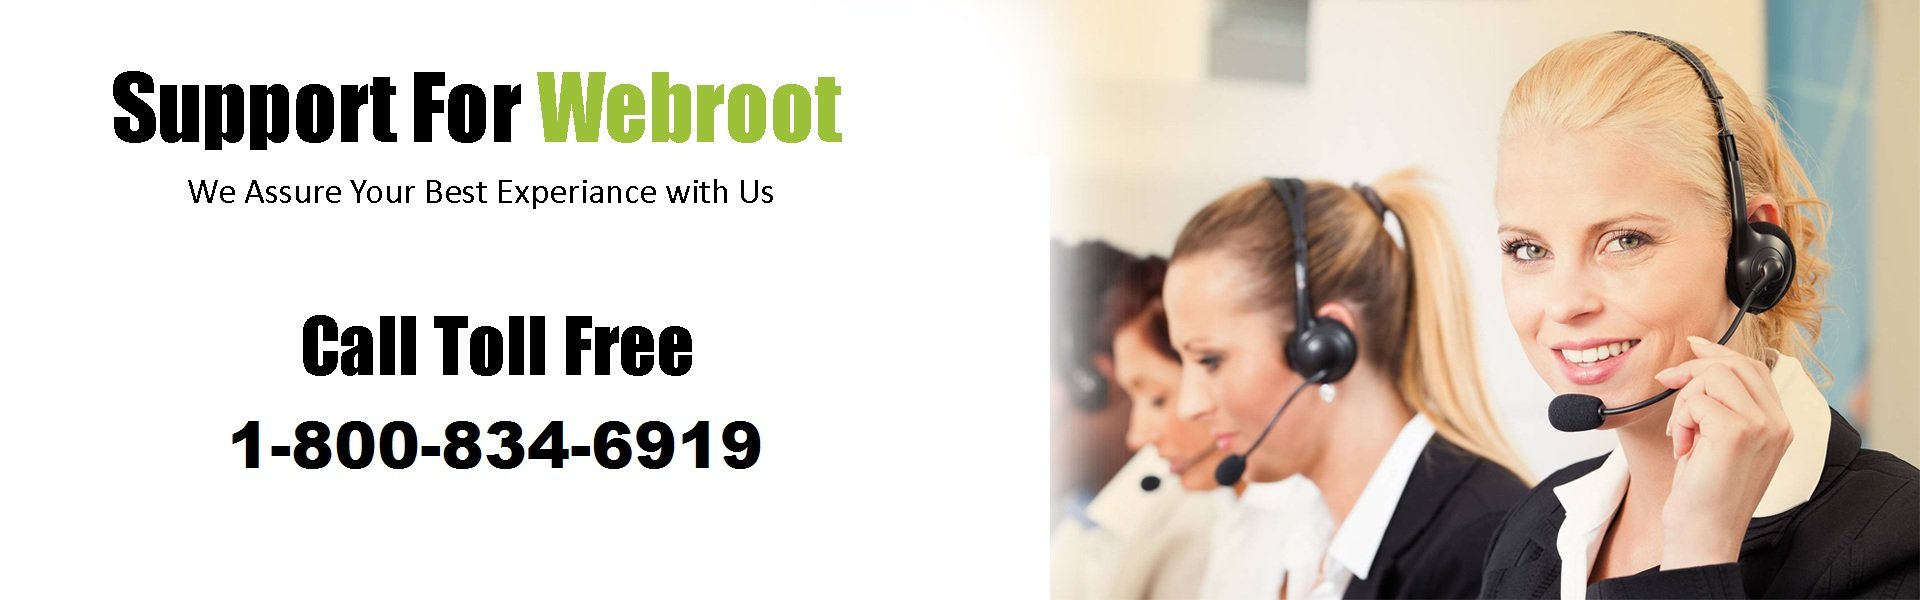 Www.webroot.com/safe Security Antivirus Tech Support Services